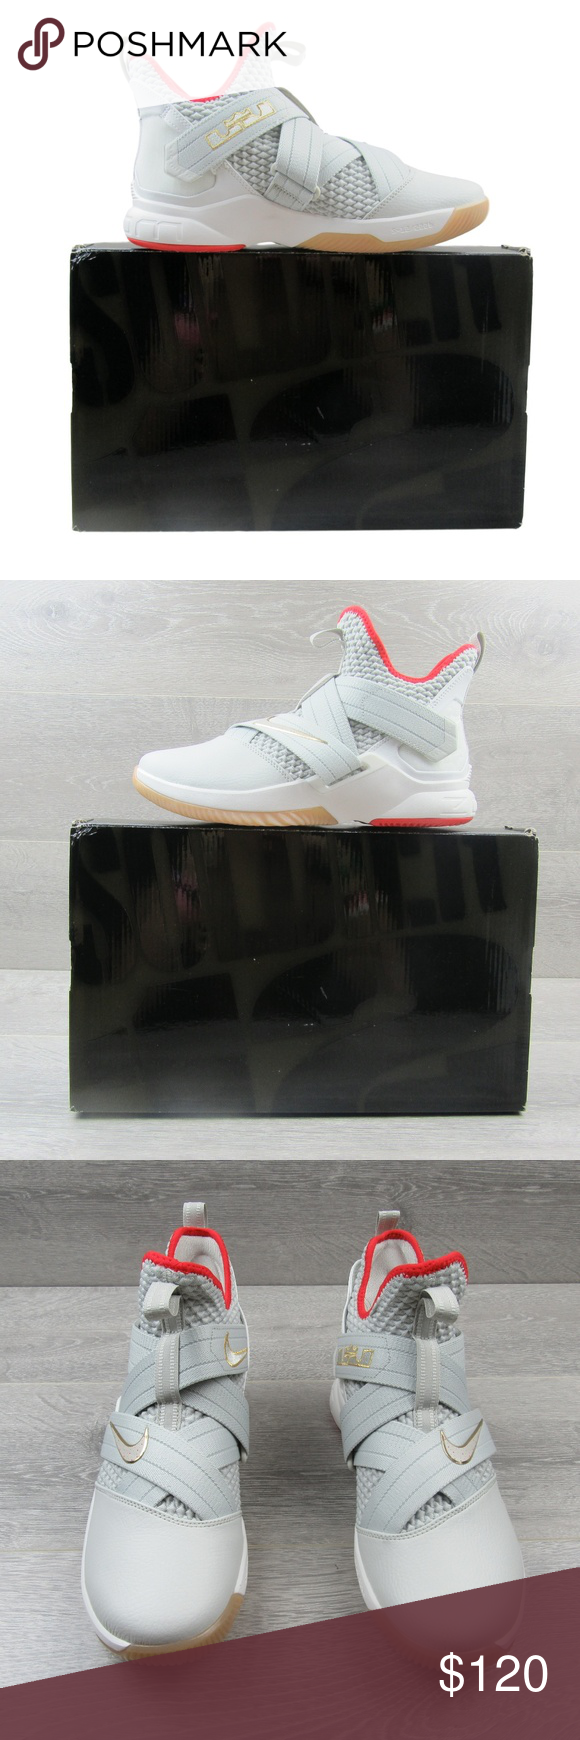 b3d4c3ac4aa0 Nike LeBron Soldier XII Basketball Shoes Size 8.5 Nike LeBron Soldier XII  SFG Basketball Shoes Men s